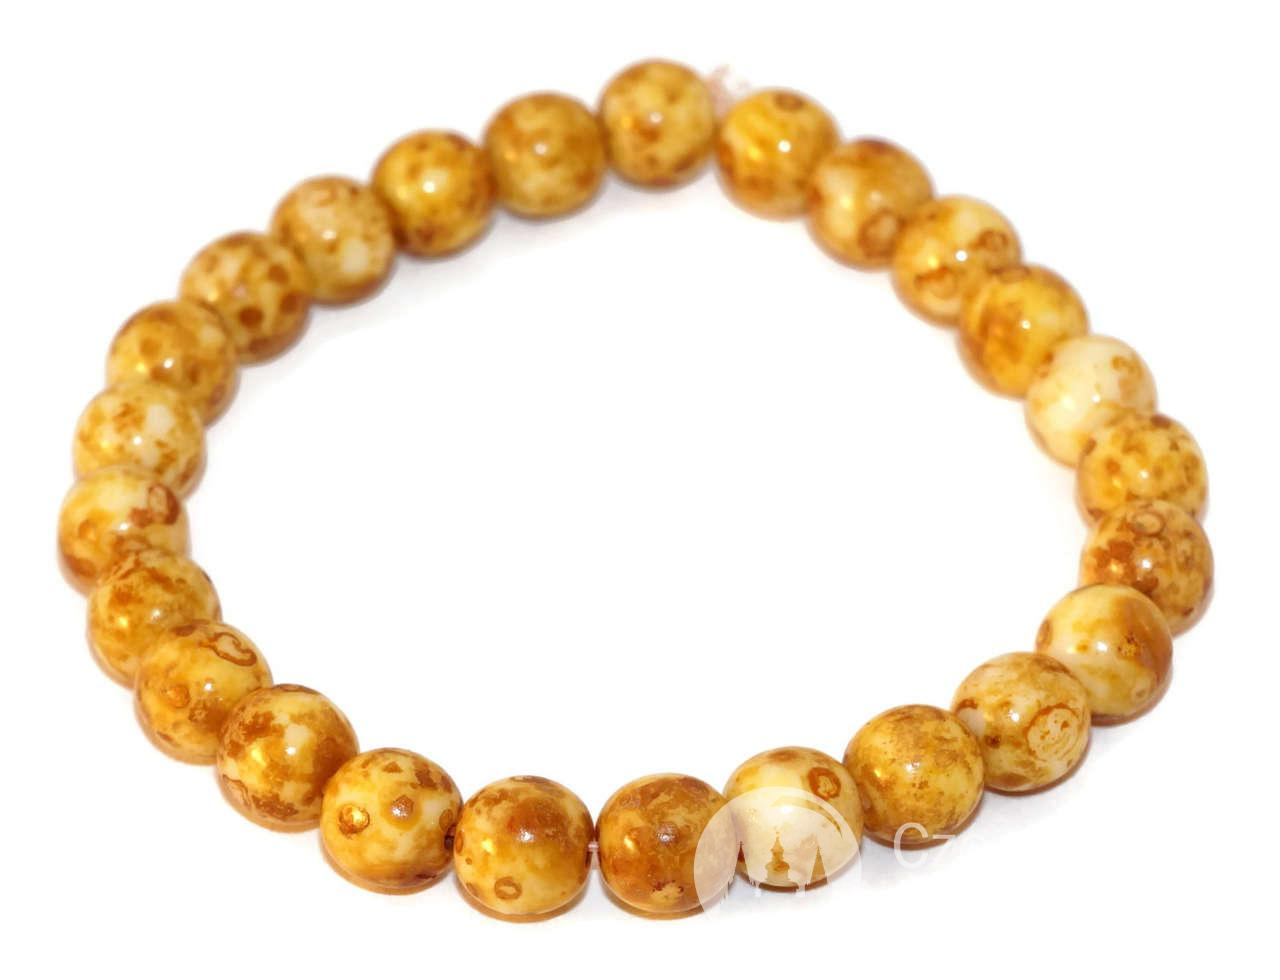 Picasso Czech Glass Beads Round Yellow Czech Beads Bronze Brown White Picasso Bead -4002